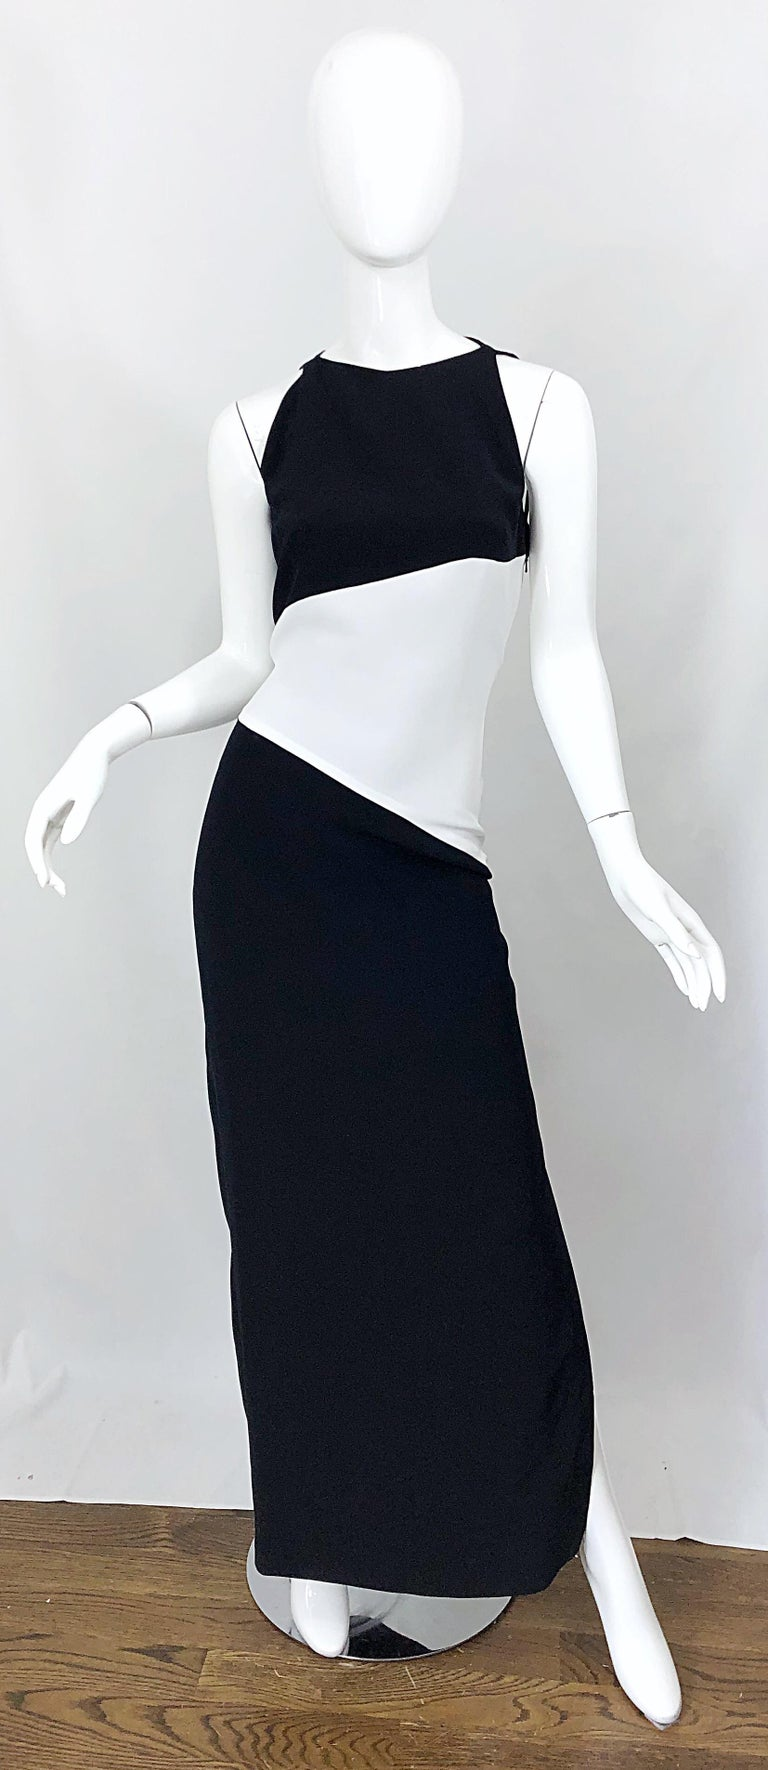 Beautiful and flattering brand new with original store tags vintage BOB MACKIE black and white color block Size 8 evening gown! Features blak crepe at bust, white crepe at waist, and black crepe skirt. High neck with a slit at the left leg that